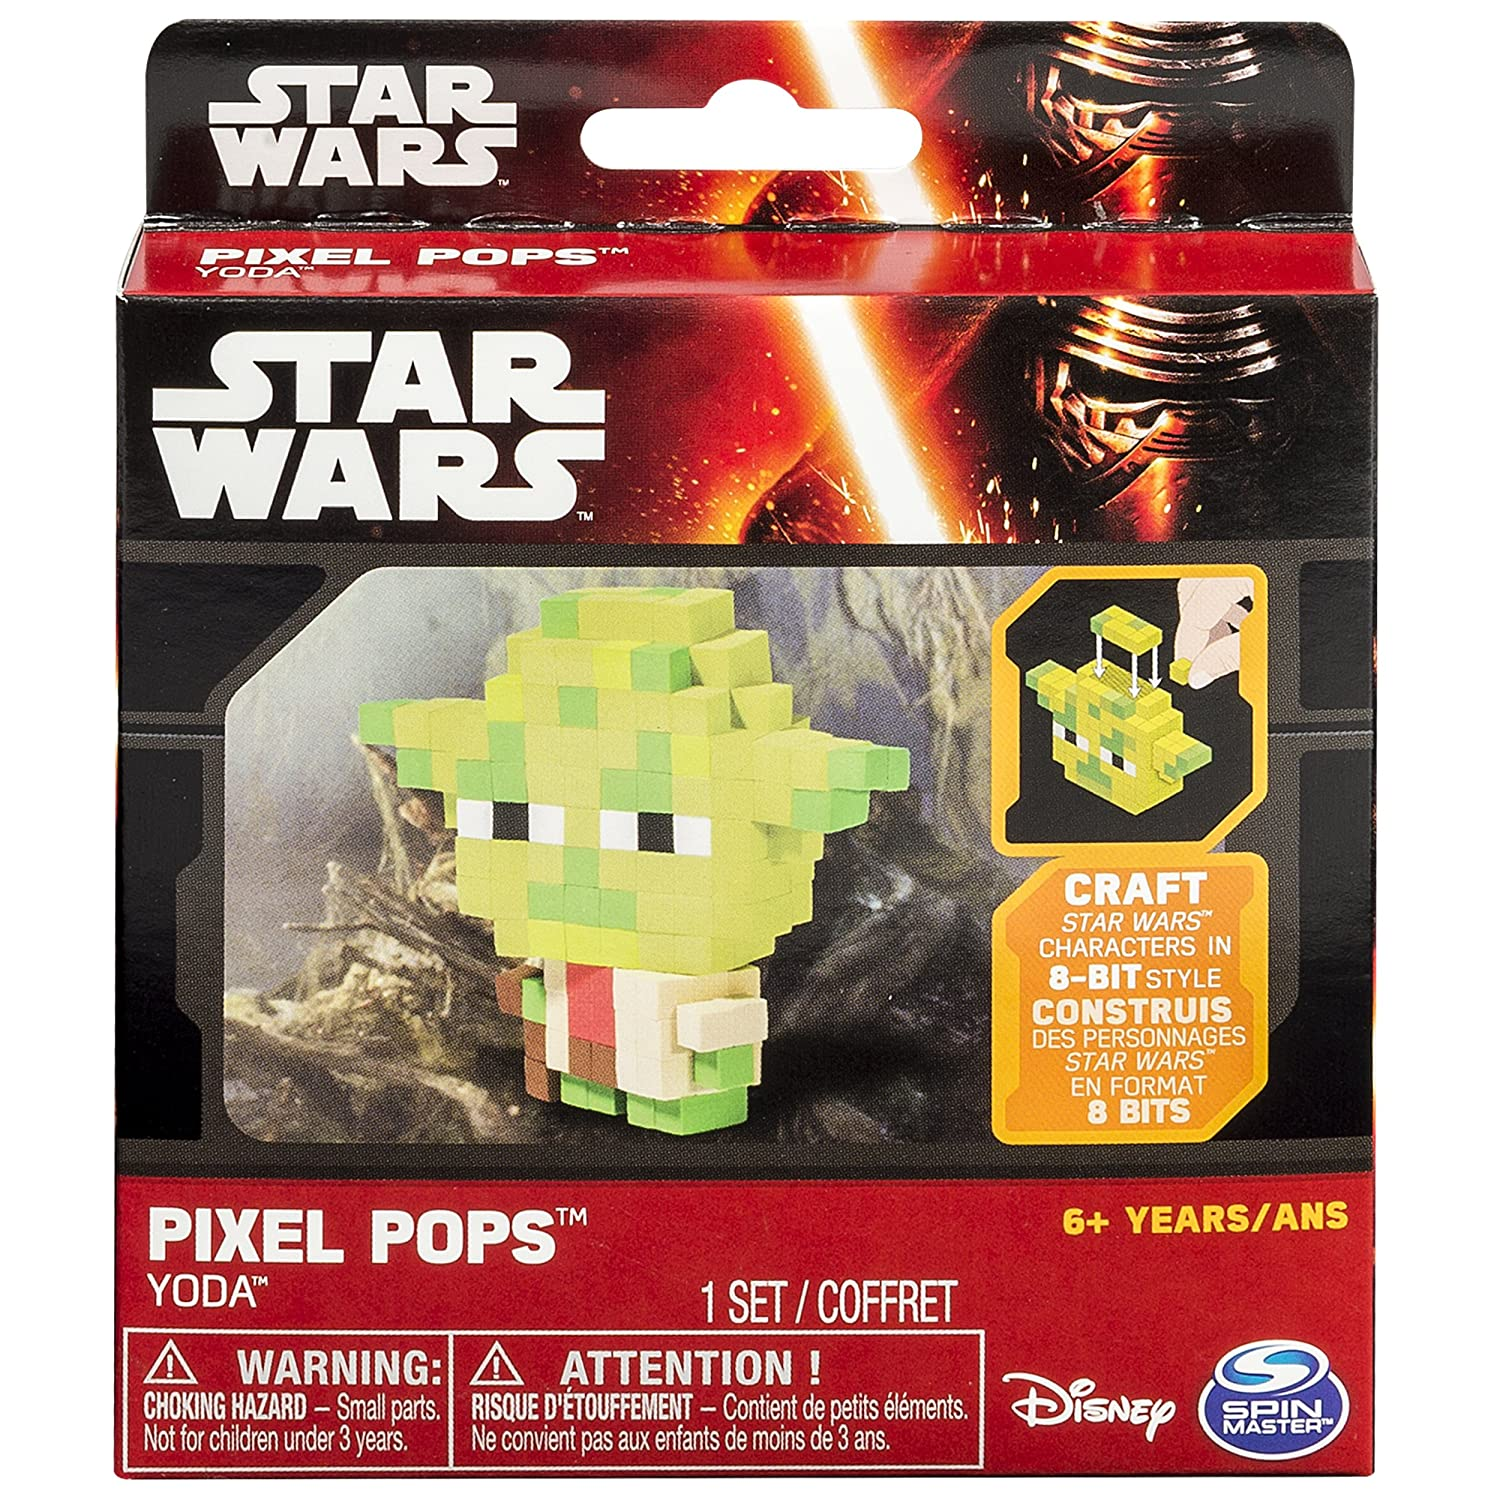 Details about STAR WARS | Classic Pixel Pops 8-Bit Yoda Jedi Council Force  Master Toy